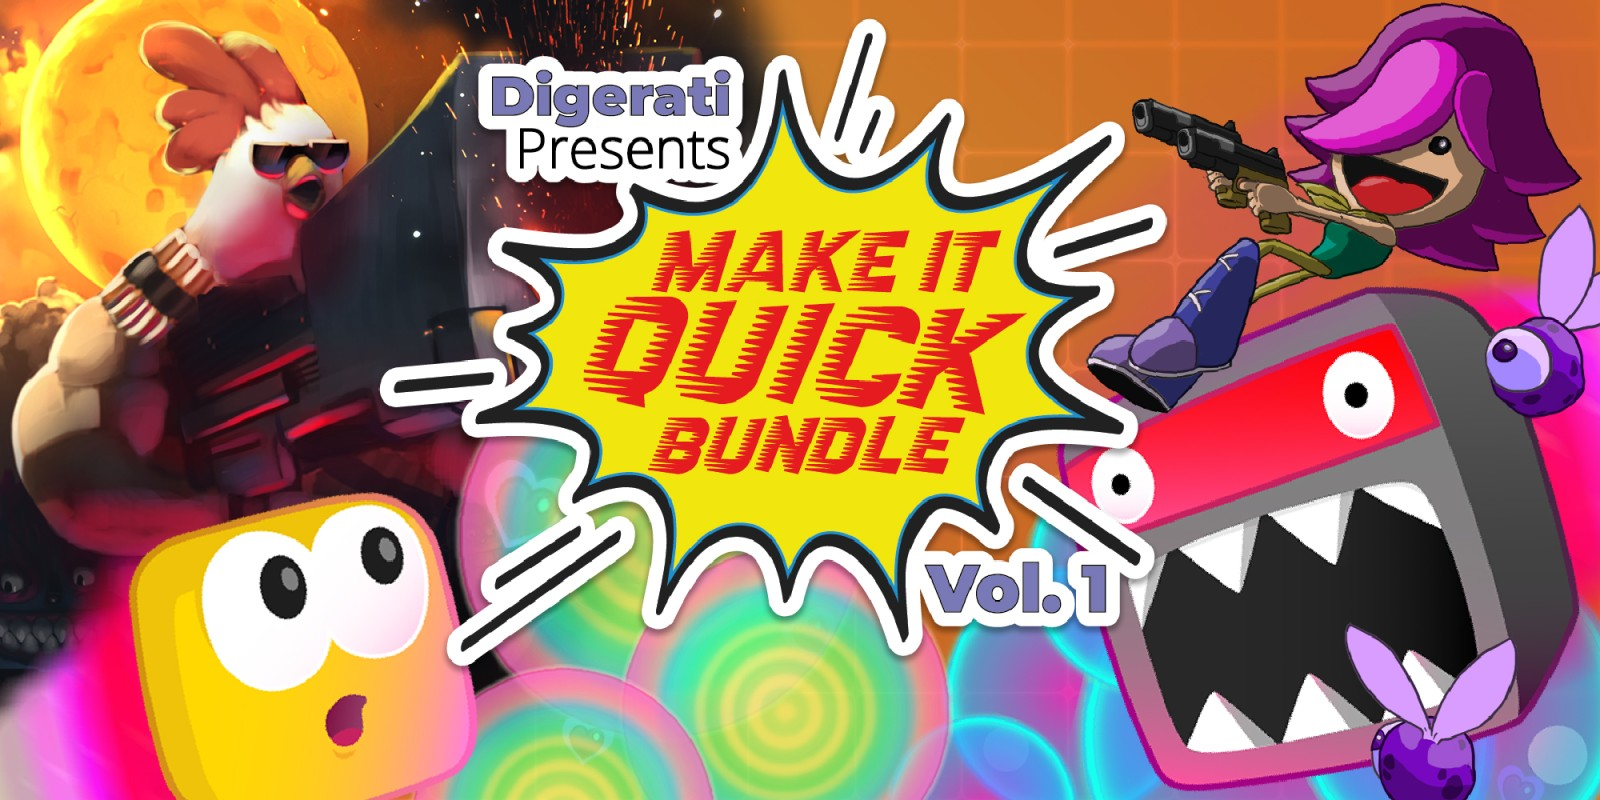 Digerati Presents: Make It Quick Bundle Vol. 1